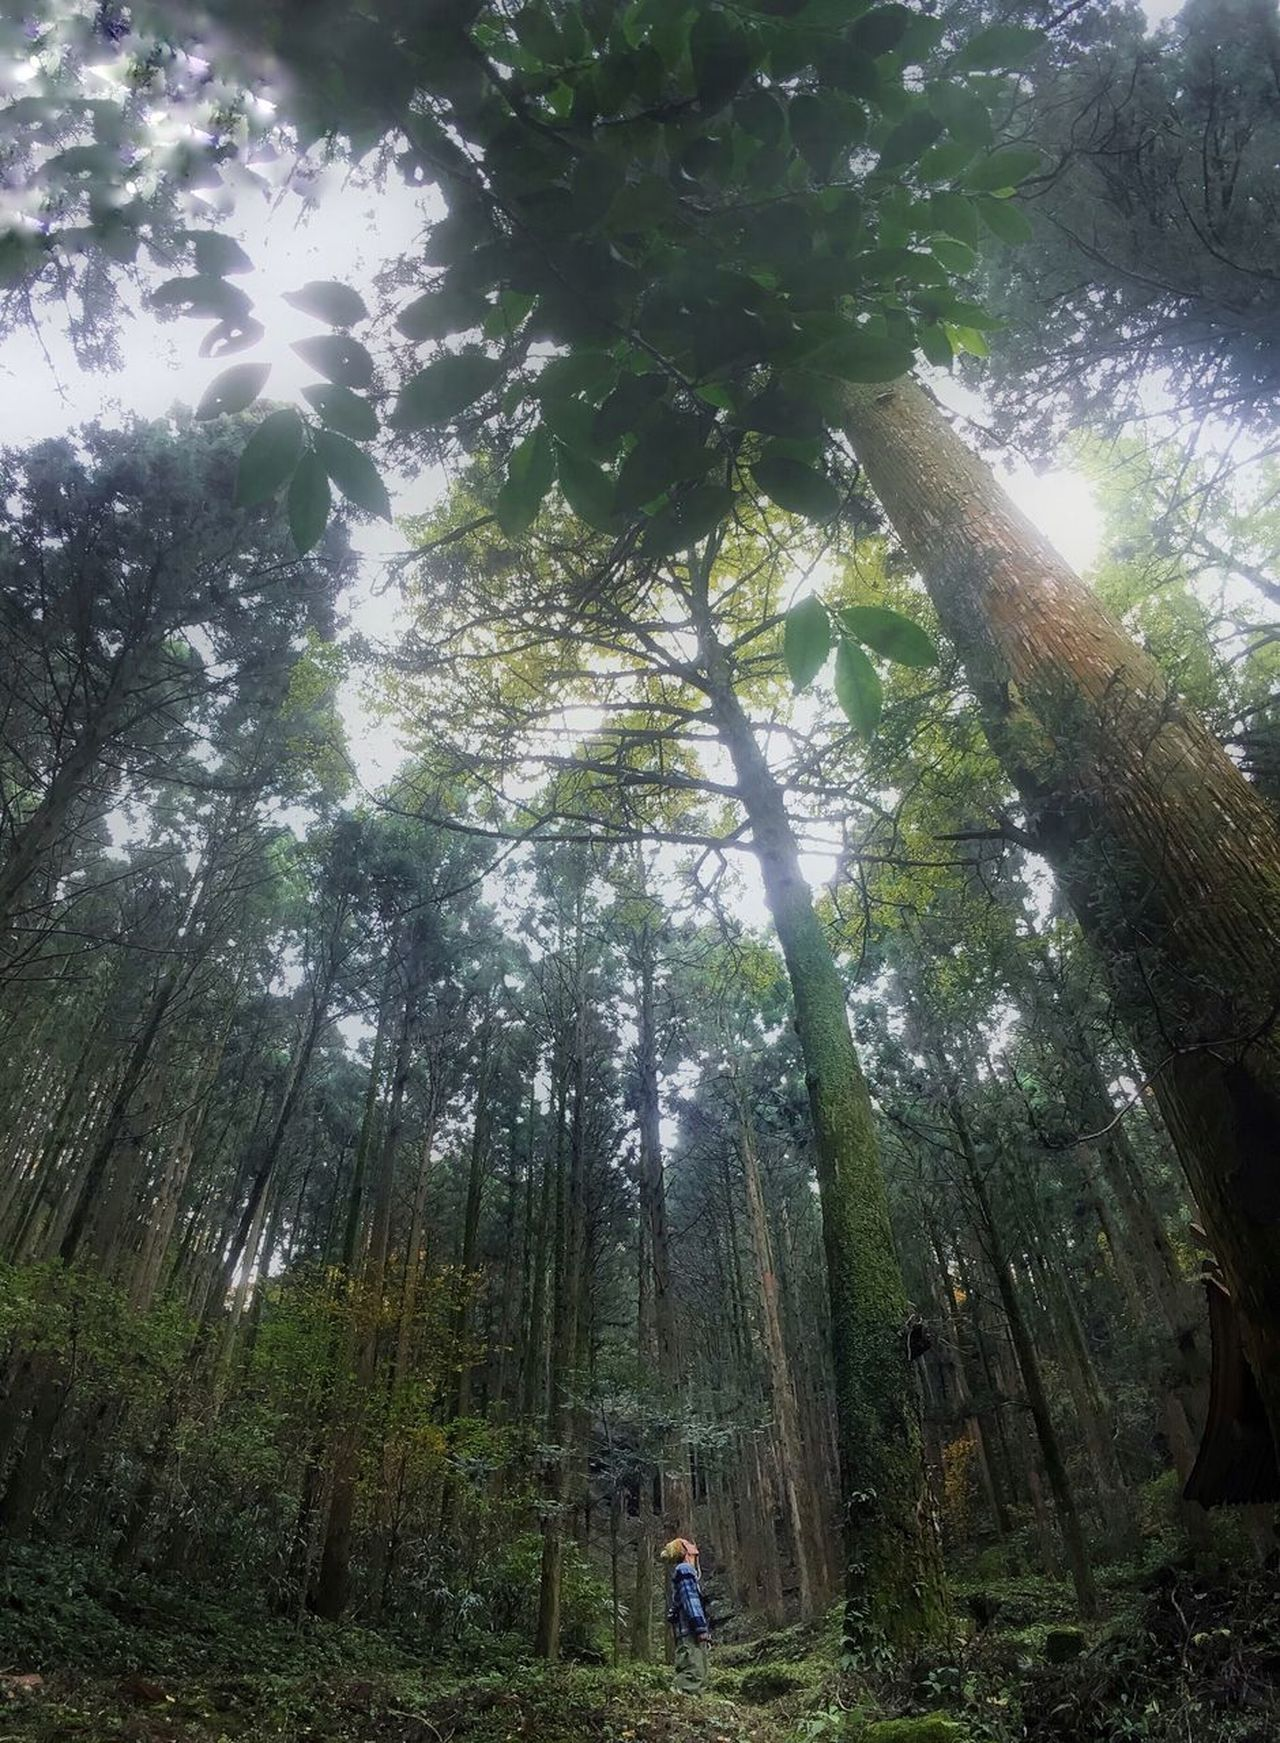 Break The Mold Tree Forest Nature Growth Low Angle View Tree Trunk Day Beauty In Nature Real People WoodLand Green Color Outdoors Tranquility Leisure Activity Hiking Scenics Men Lifestyles Adventure Bamboo - Plant